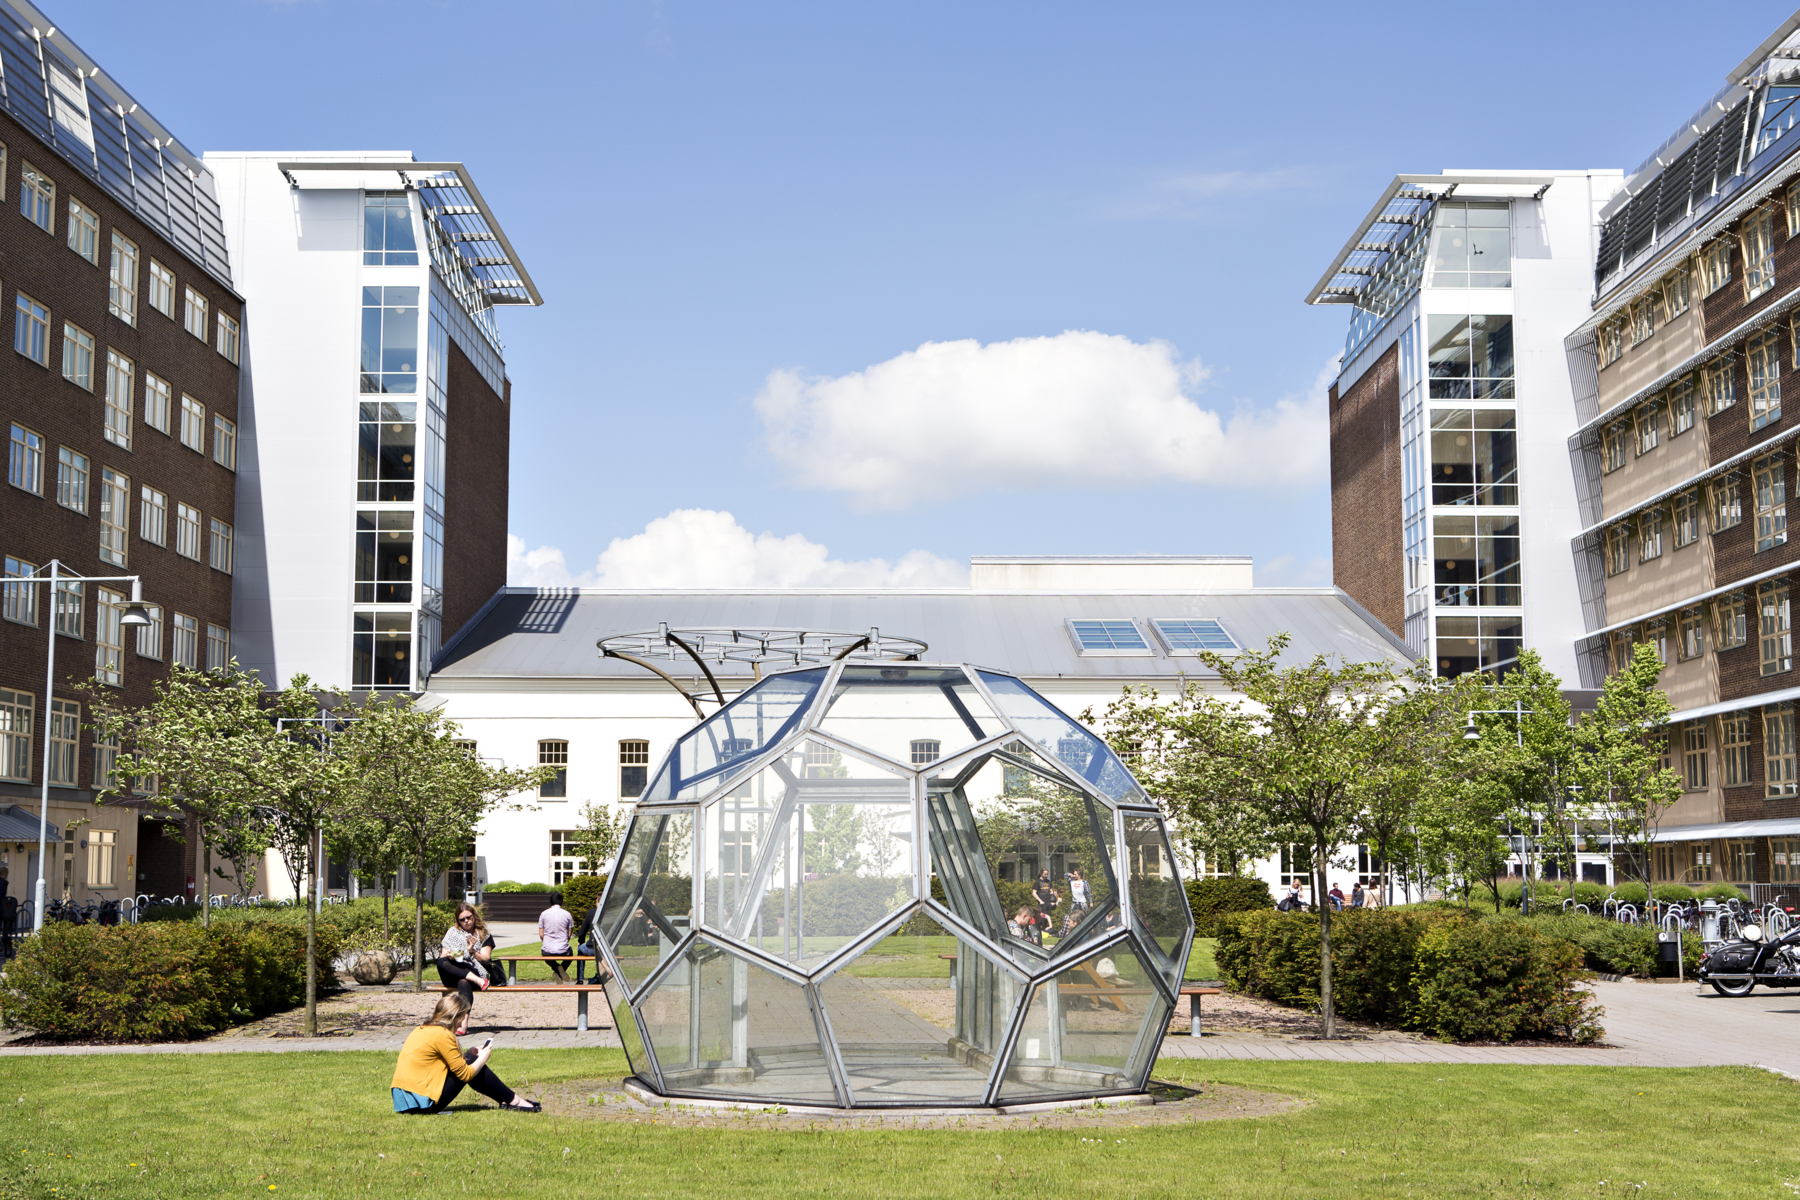 Photo of Campus Helsingborg on a sunny day. A person is sitting in the grass in front of a big glass building.